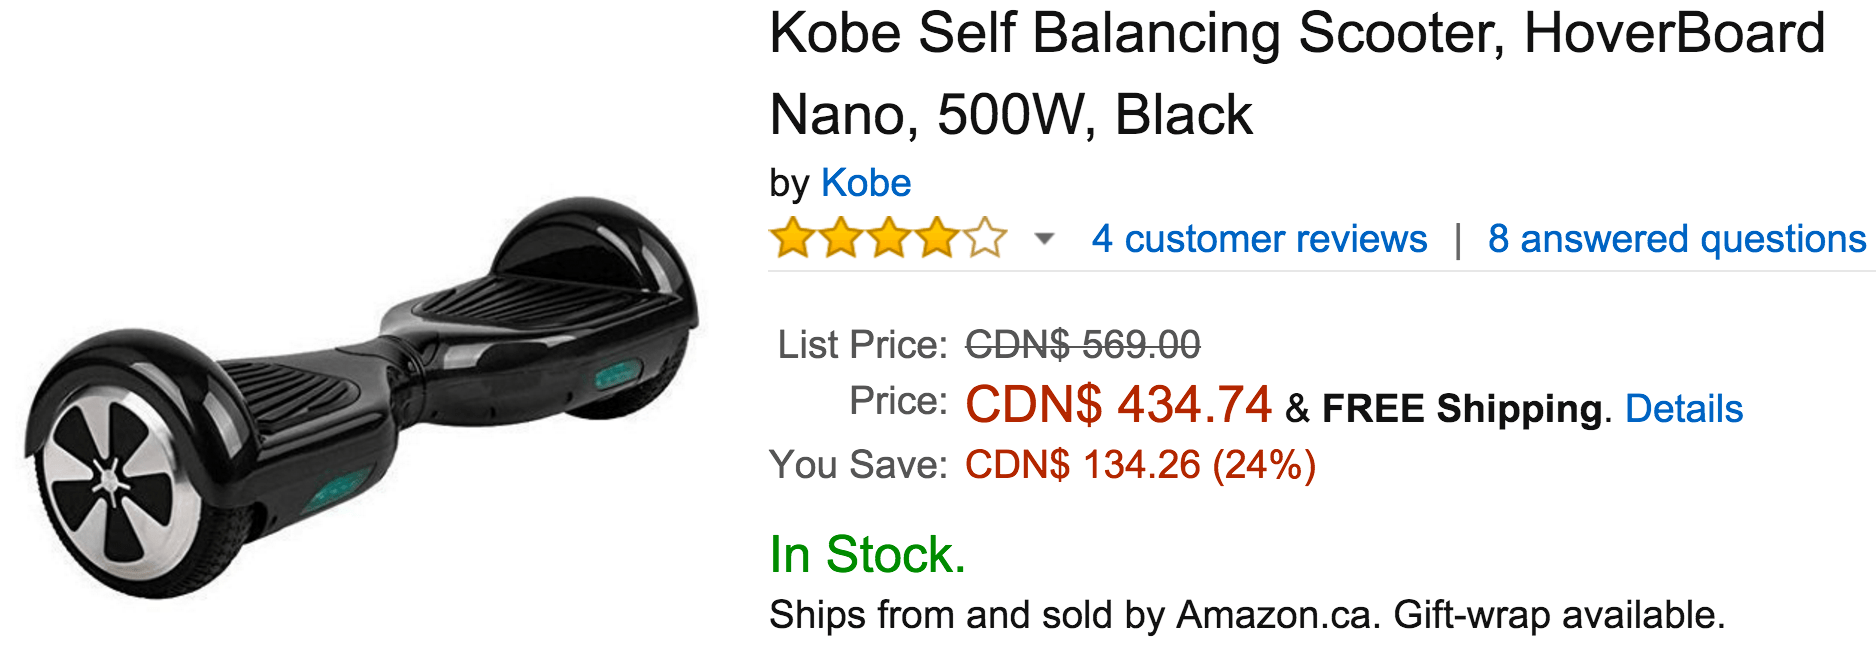 amazon canada offers save 24 on kobe self balancing scooter hoverboard nano 500w black. Black Bedroom Furniture Sets. Home Design Ideas